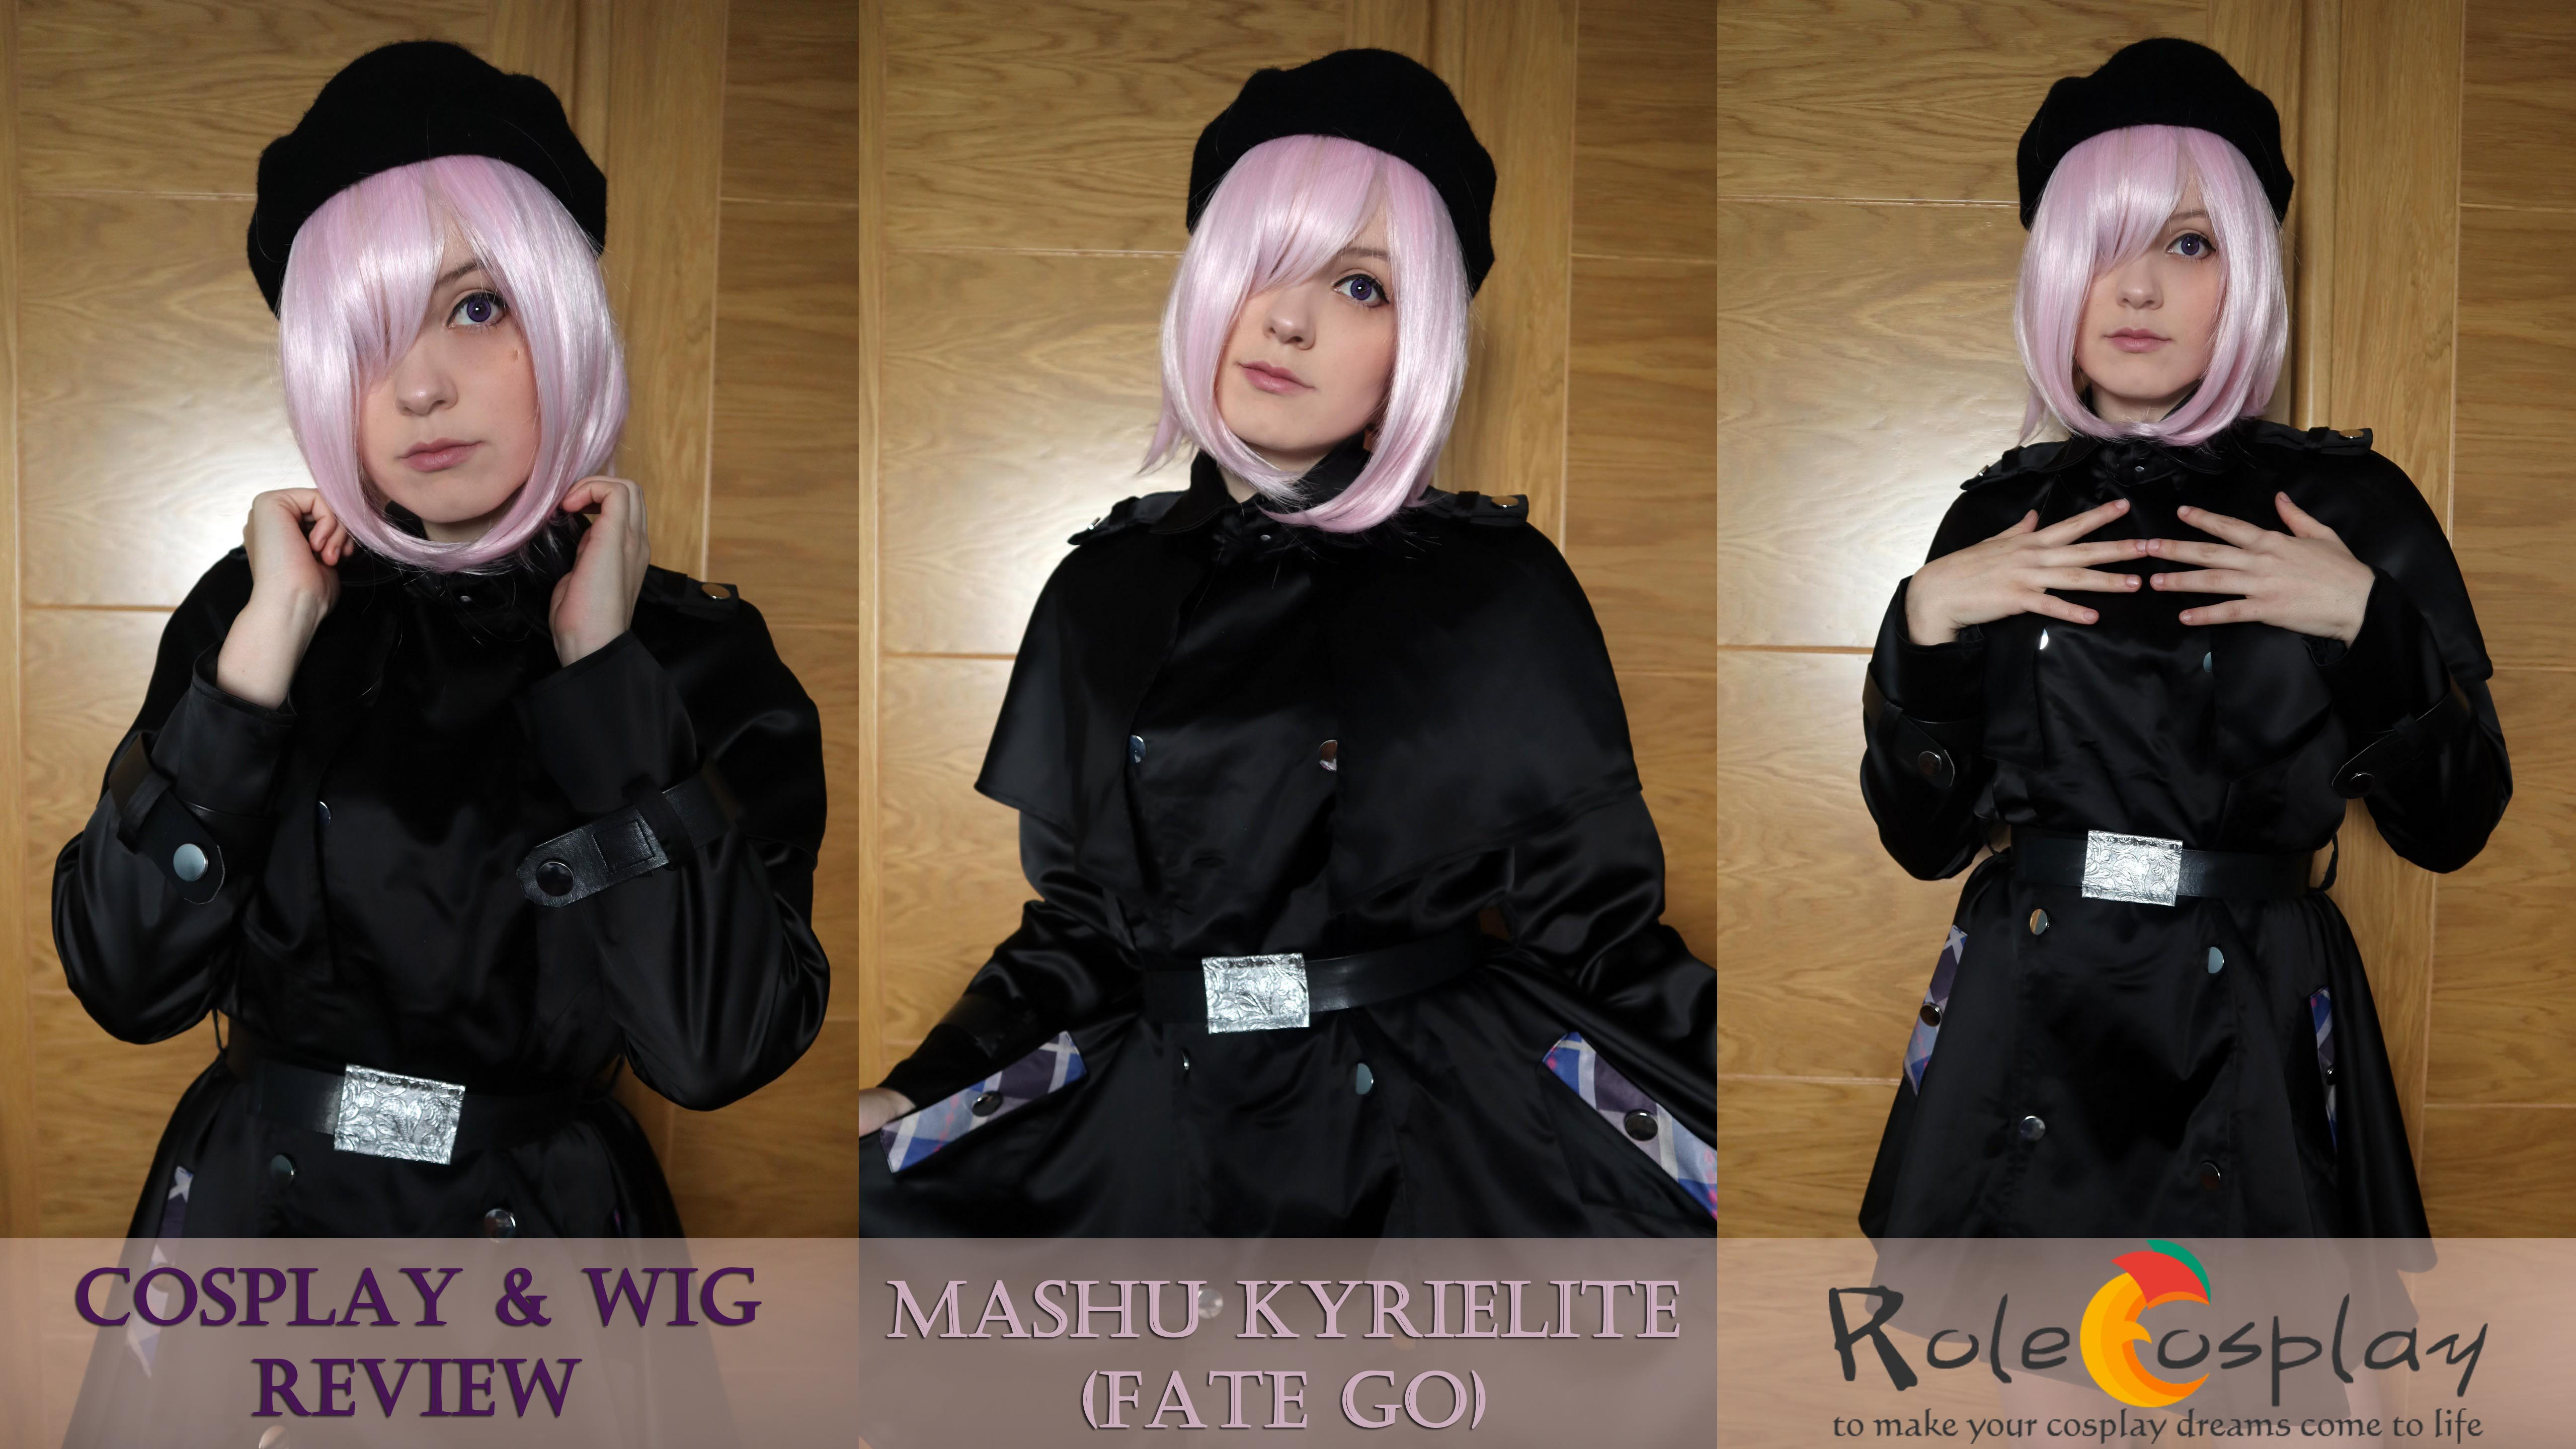 Cosplay & Wig Review: Mashu Kyrielight Travel Version from Fate/ Grand Order